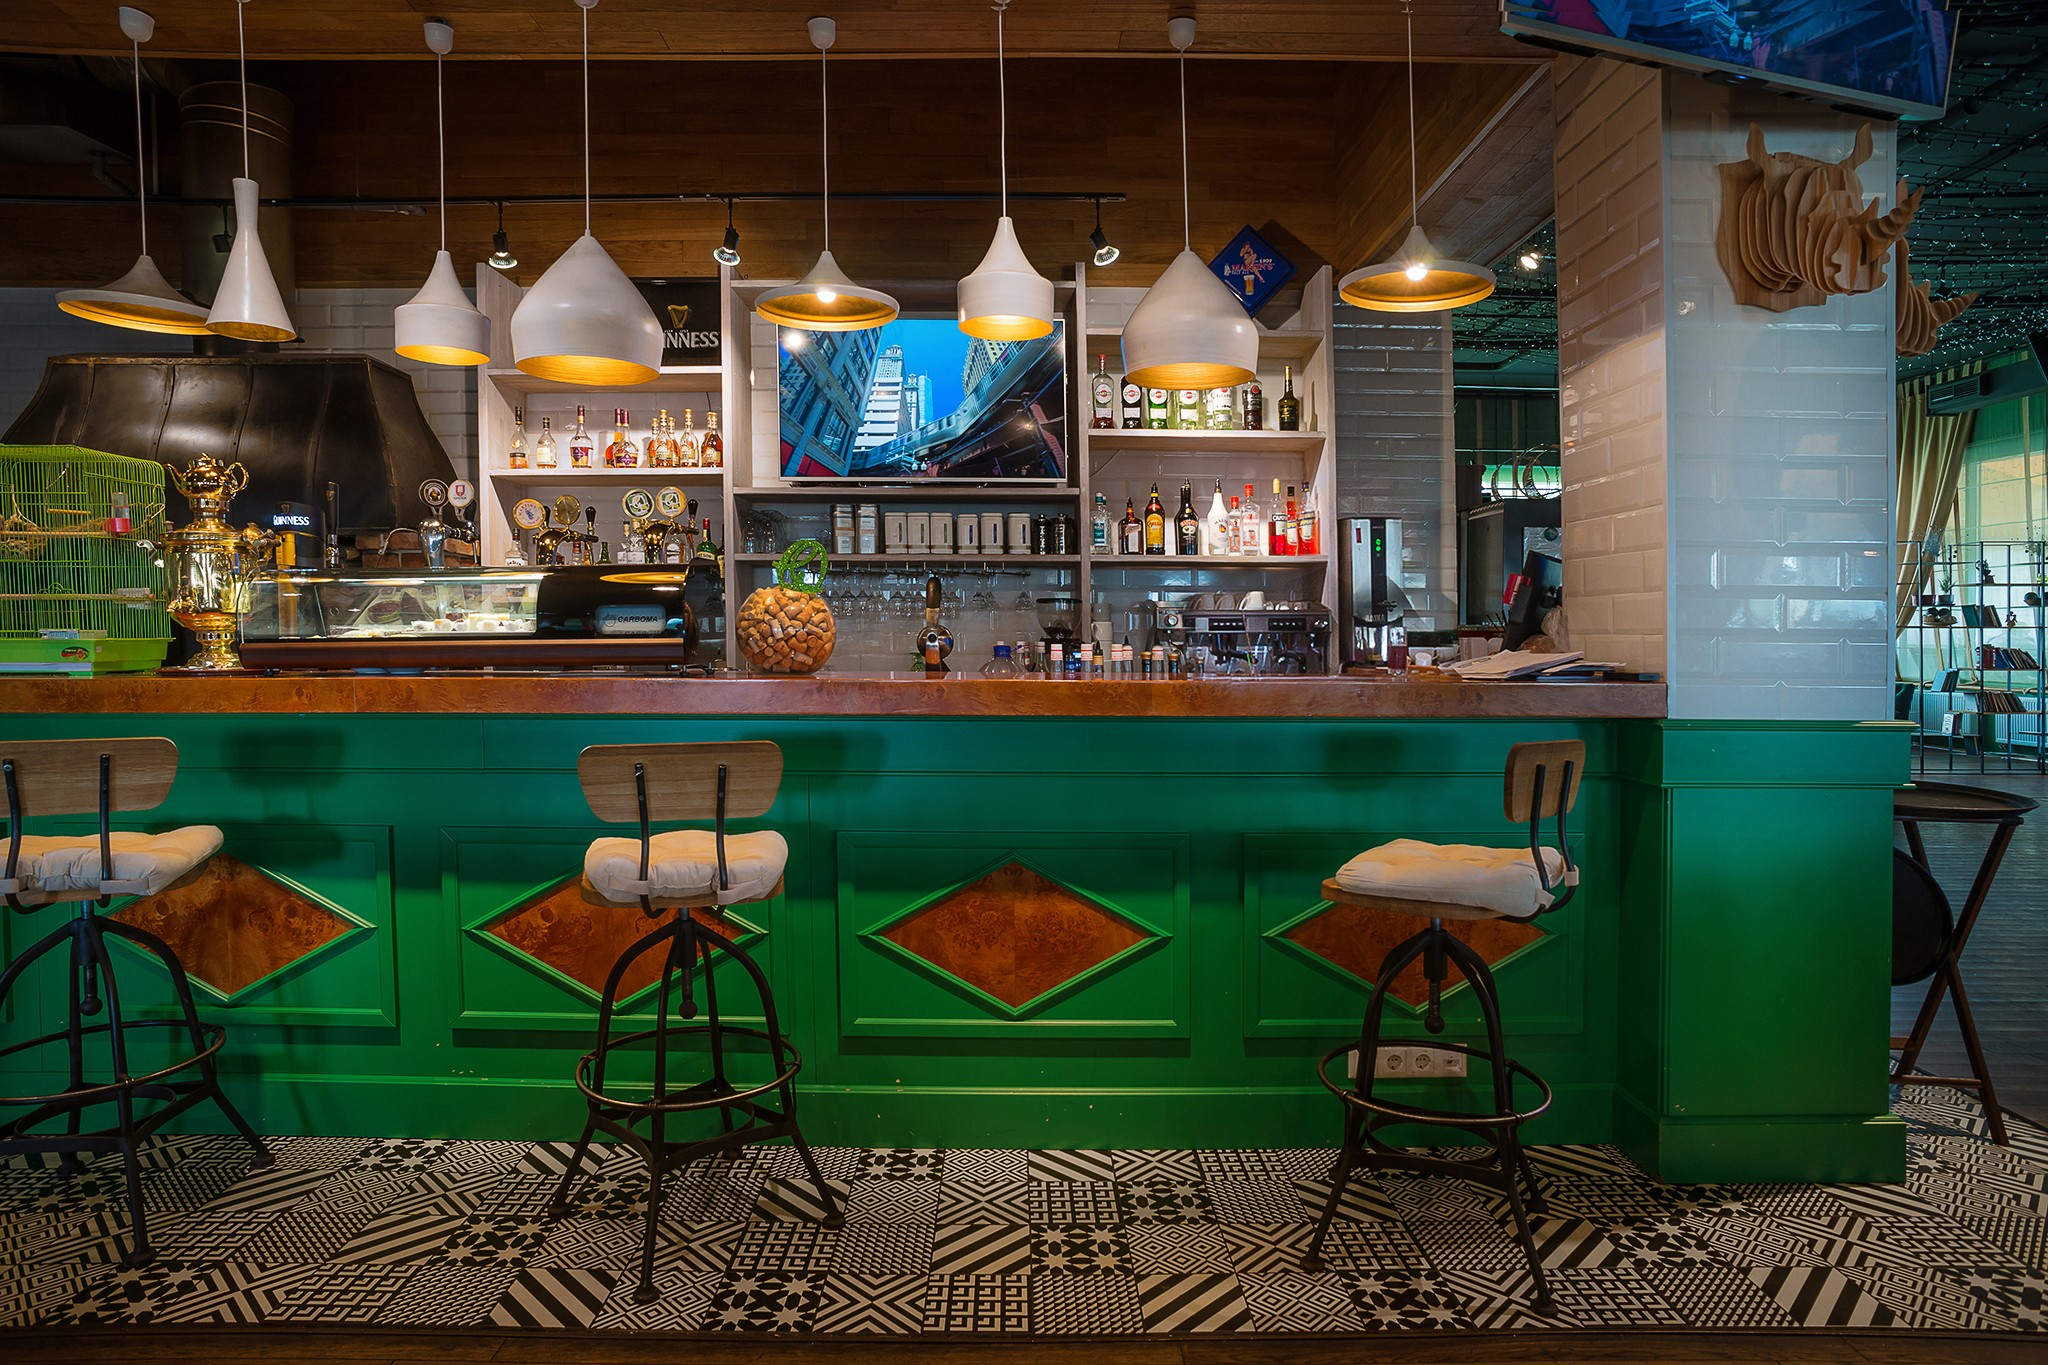 Interior photography of real estate. Photographs of restaurants by photographer Kyril Toll. Moscow